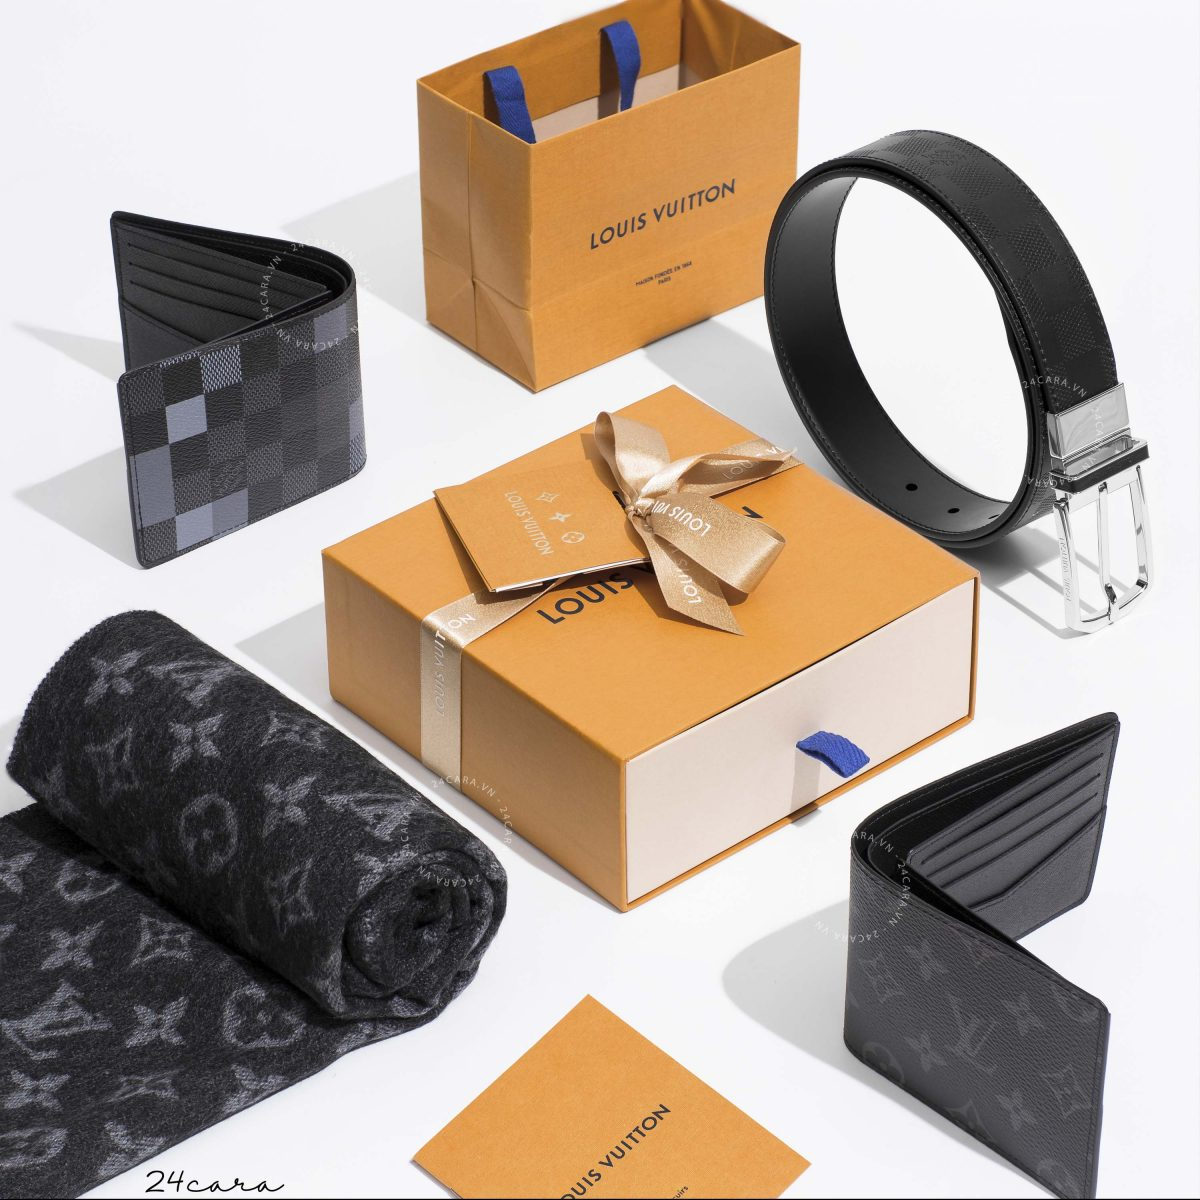 LOUIS VUITTON SLENDER 35MM REVERSIBLE BELT